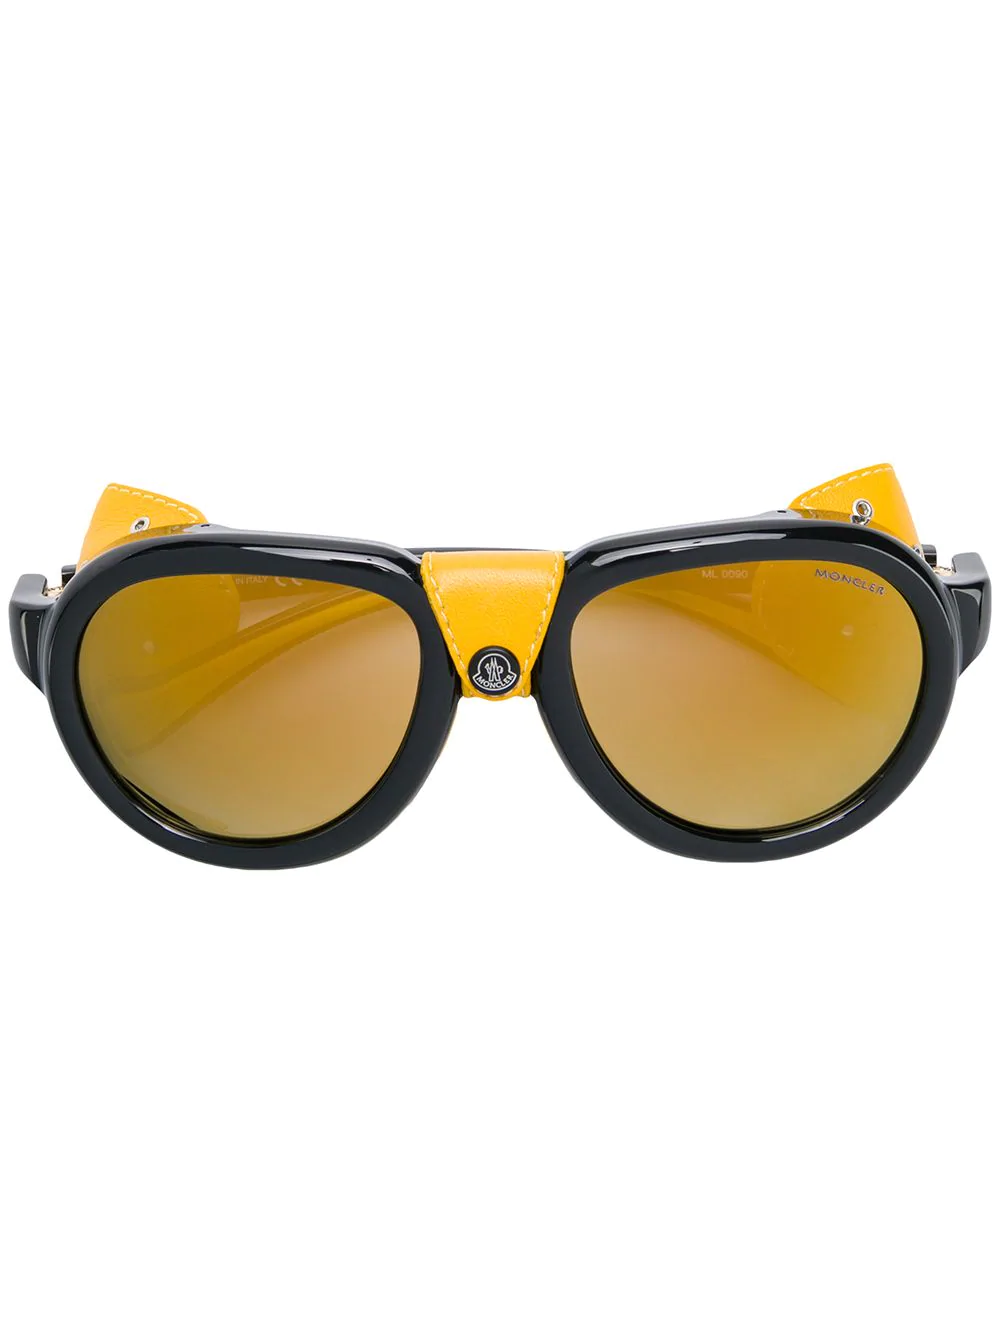 Moncler Mirrored Lunettes In Black